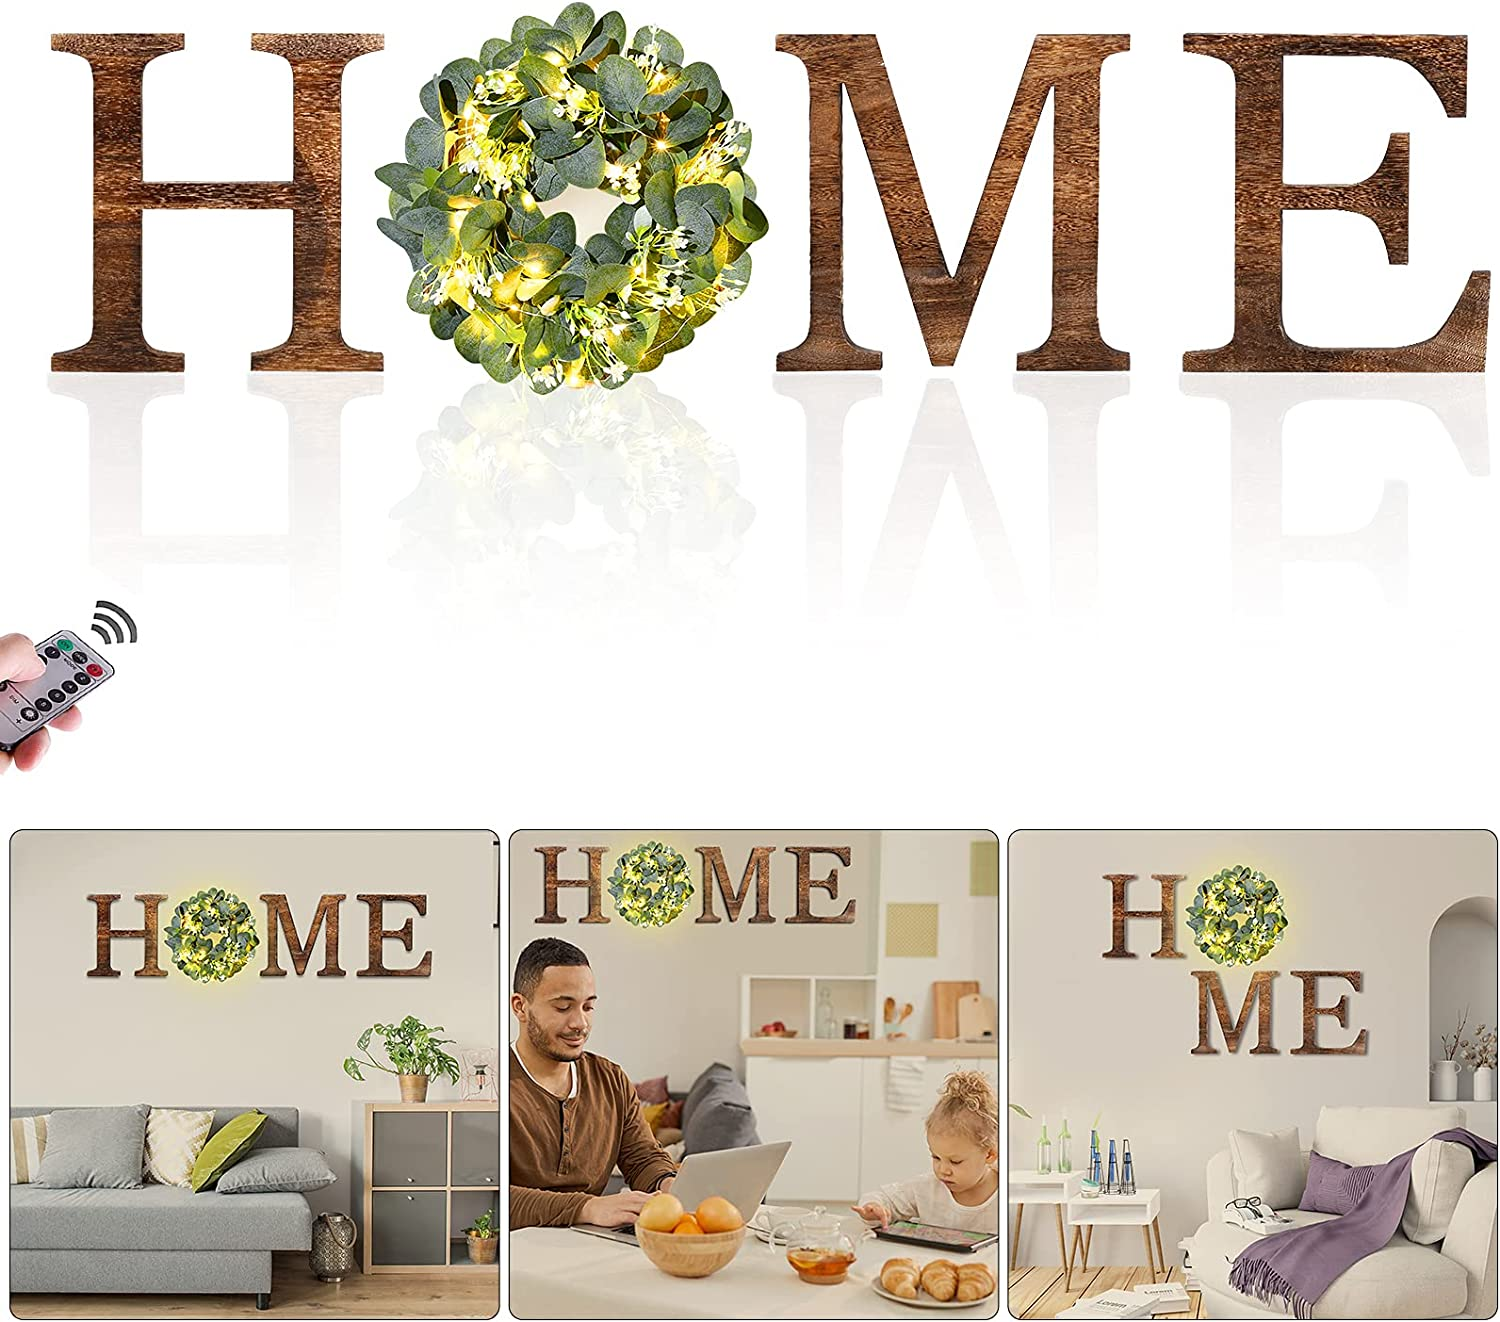 Wooden Home Sign Wall Decor with Remote Fairy Light - Wood Letters Home Decor with Artificial Eucalyptus Wreath Rustic Wall Decor for Living Room Bedroom Entryway Fireplace Housewarming Gift